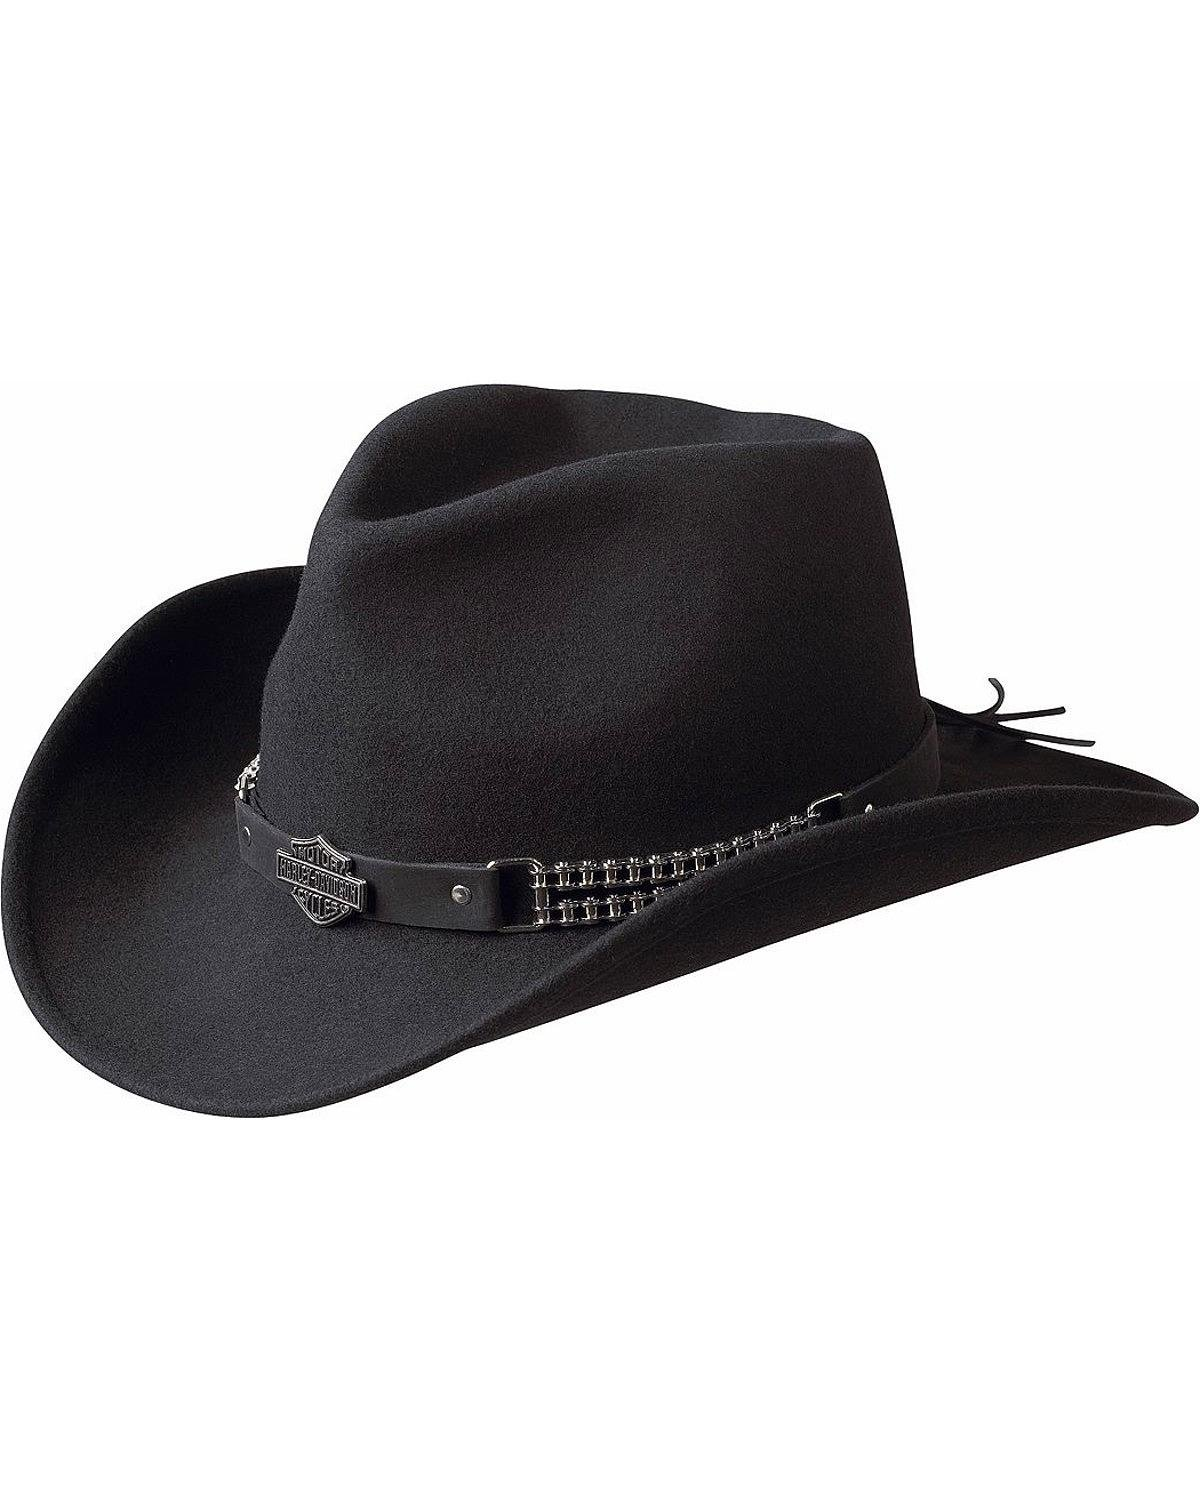 Harley-Davidson Men's Chain Band Bend-A-Brim Wool Felt Crushable Cowboy Hat Black Small